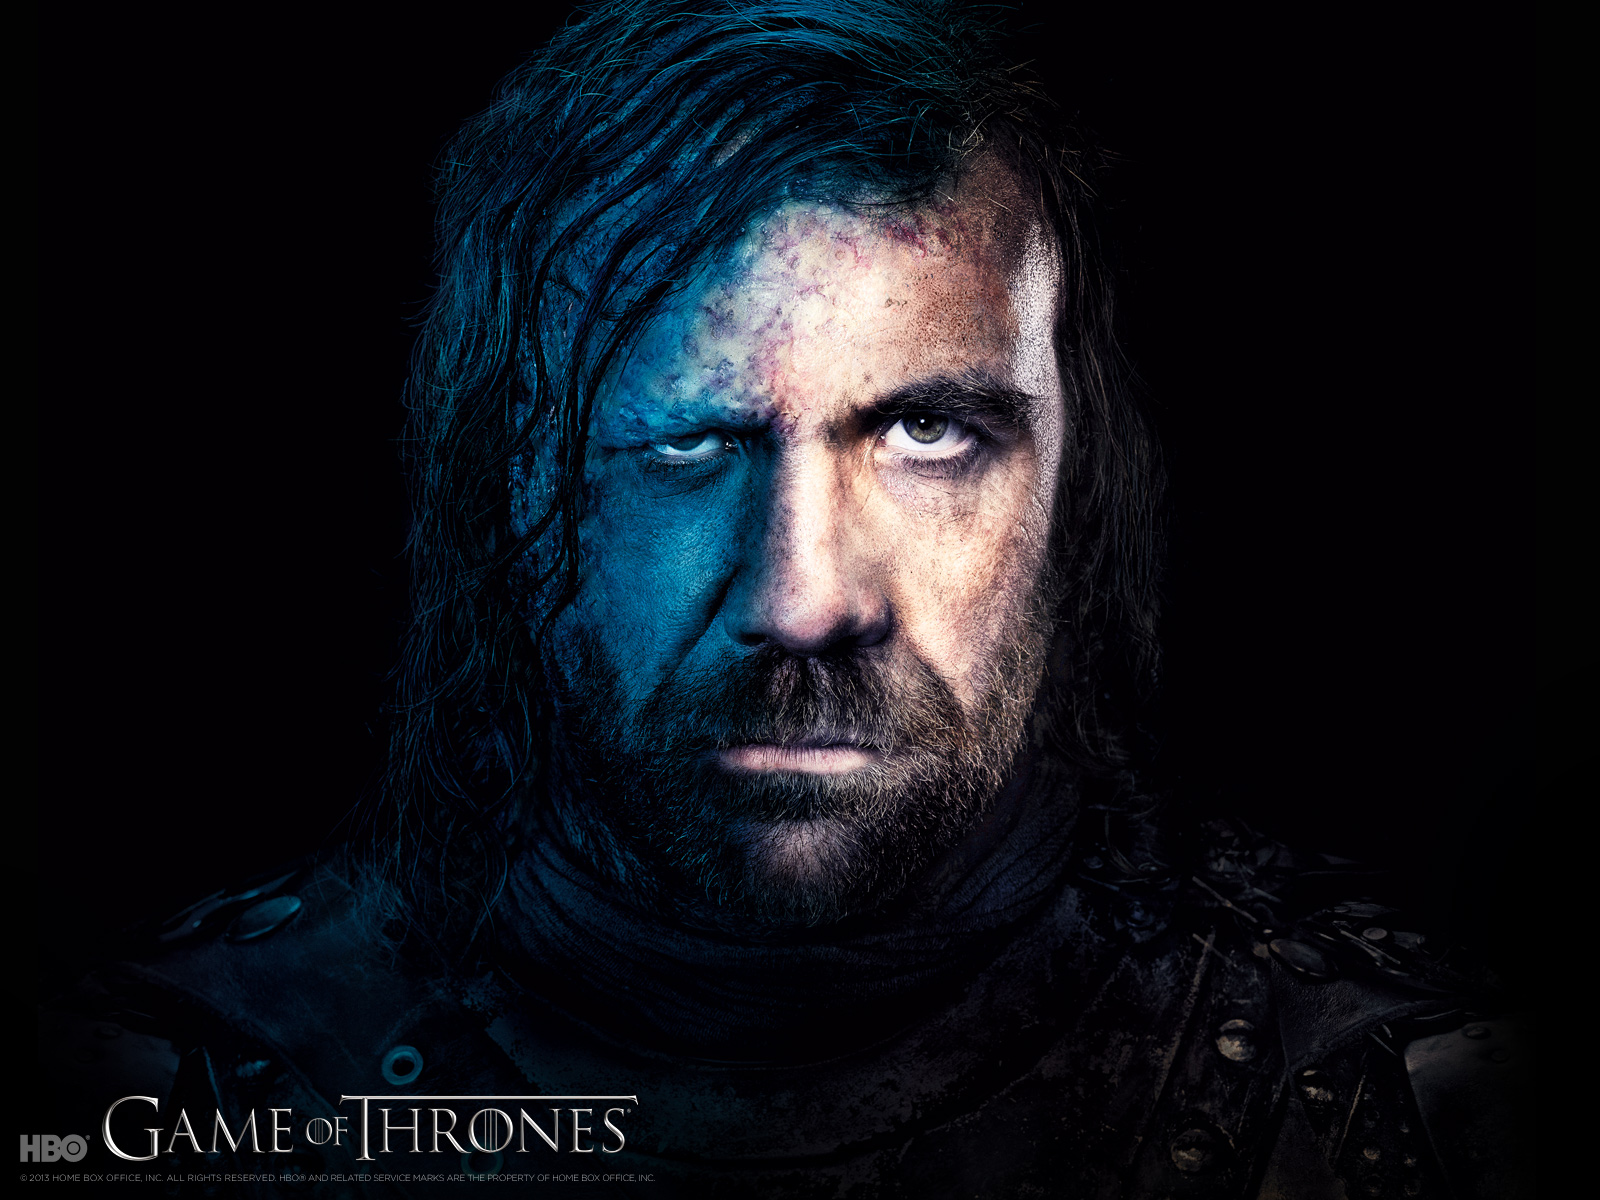 Game Of Thrones Wallpaper Hd Season 3 Images amp Pictures 1600x1200